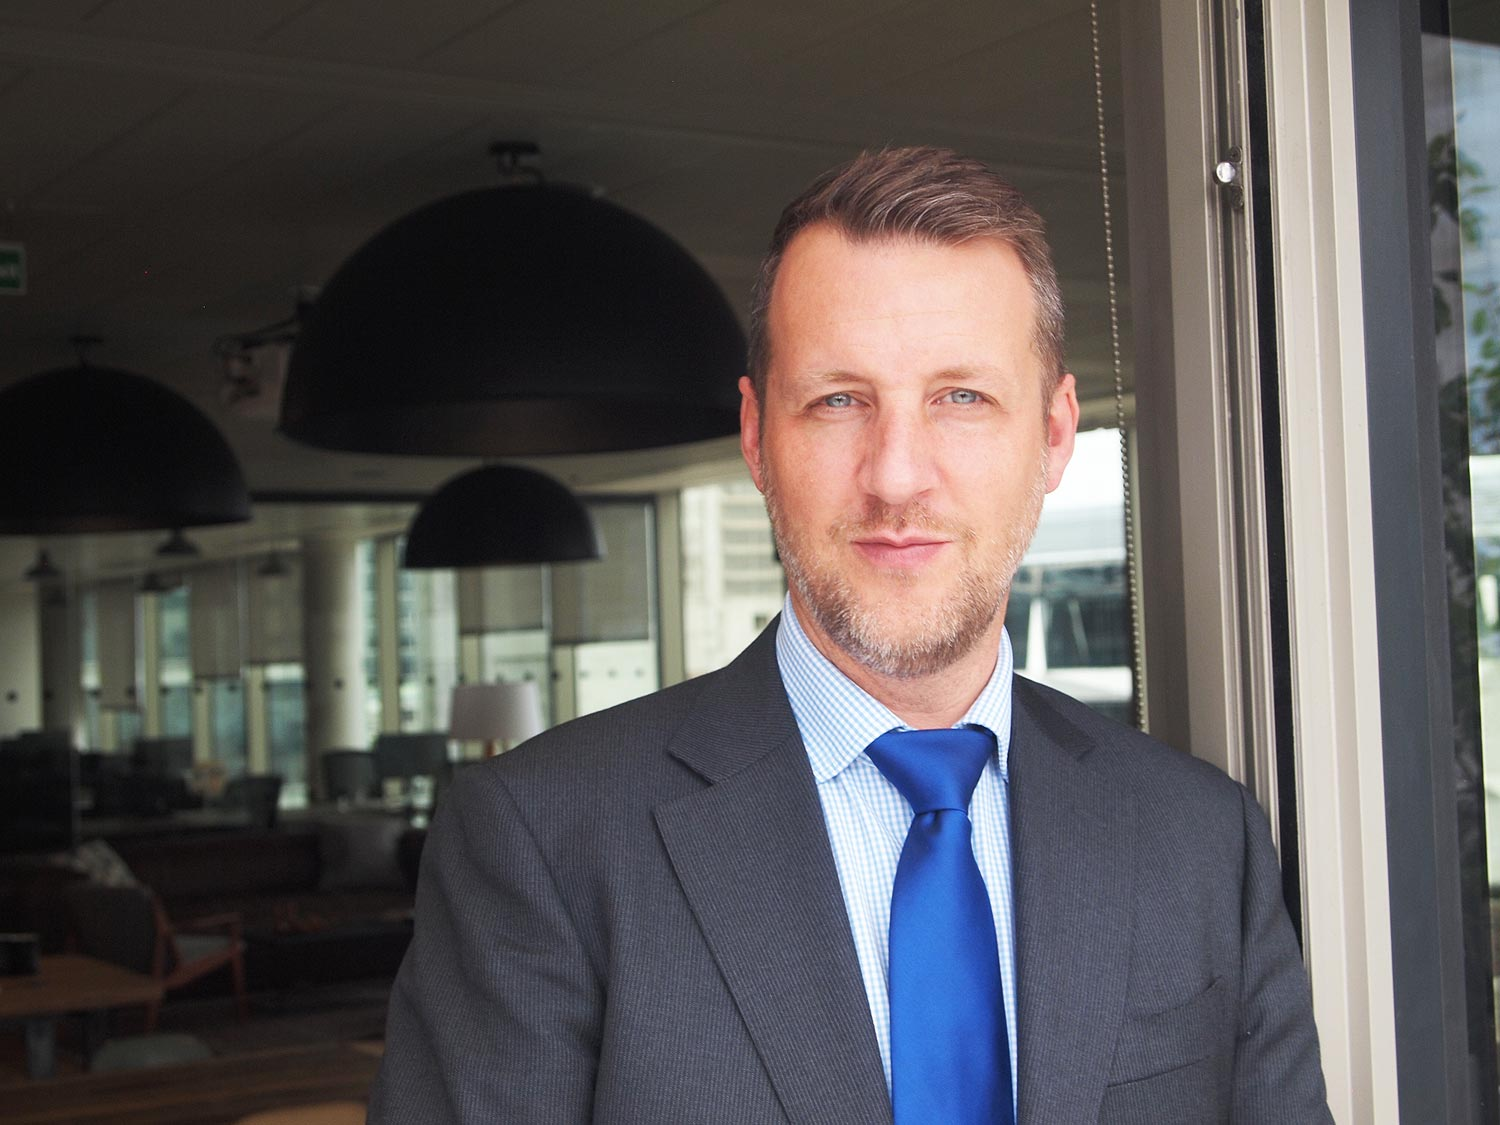 Interview With Stuart McNair, CEO of Luxury Travel Advisors